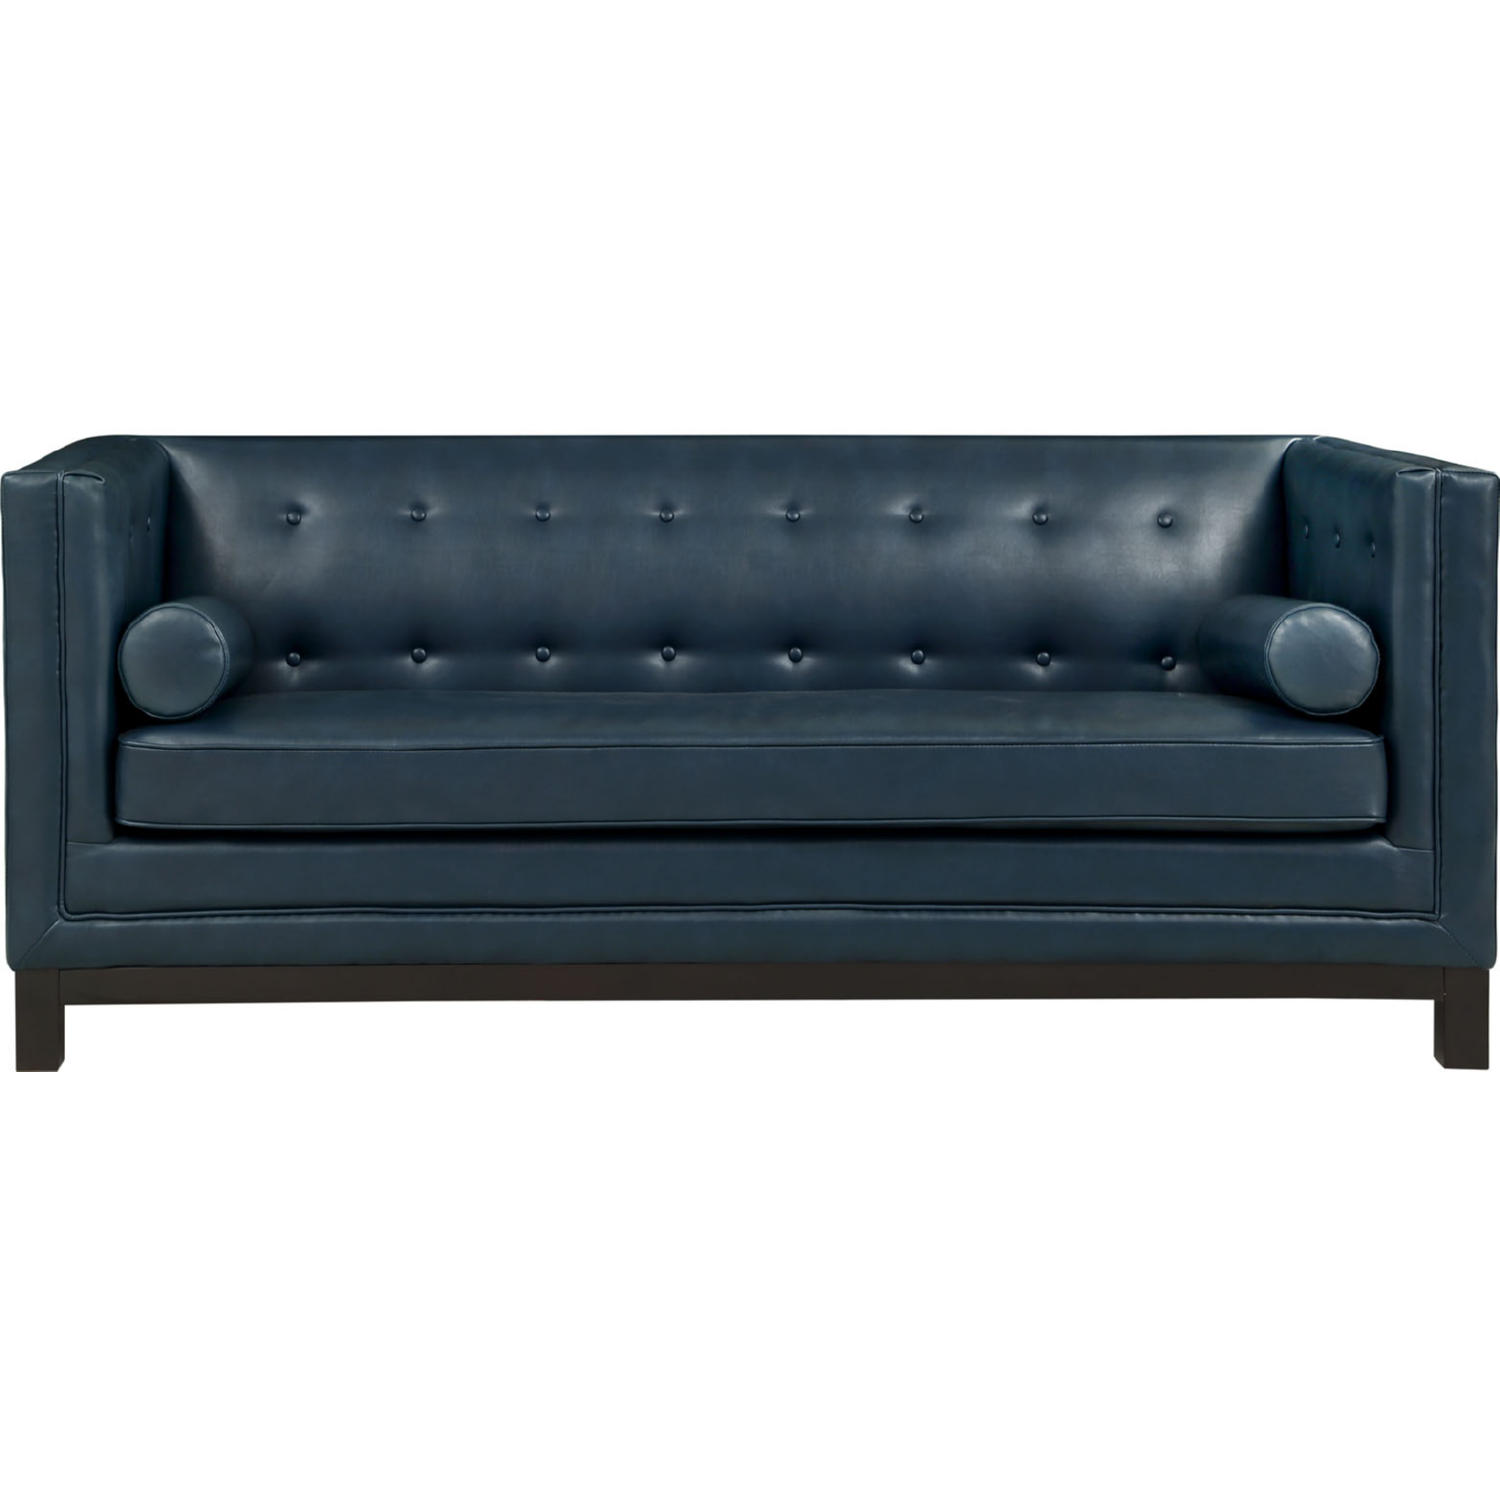 Imperial Sofa In Blue Tufted Leather W Pillows By Modway